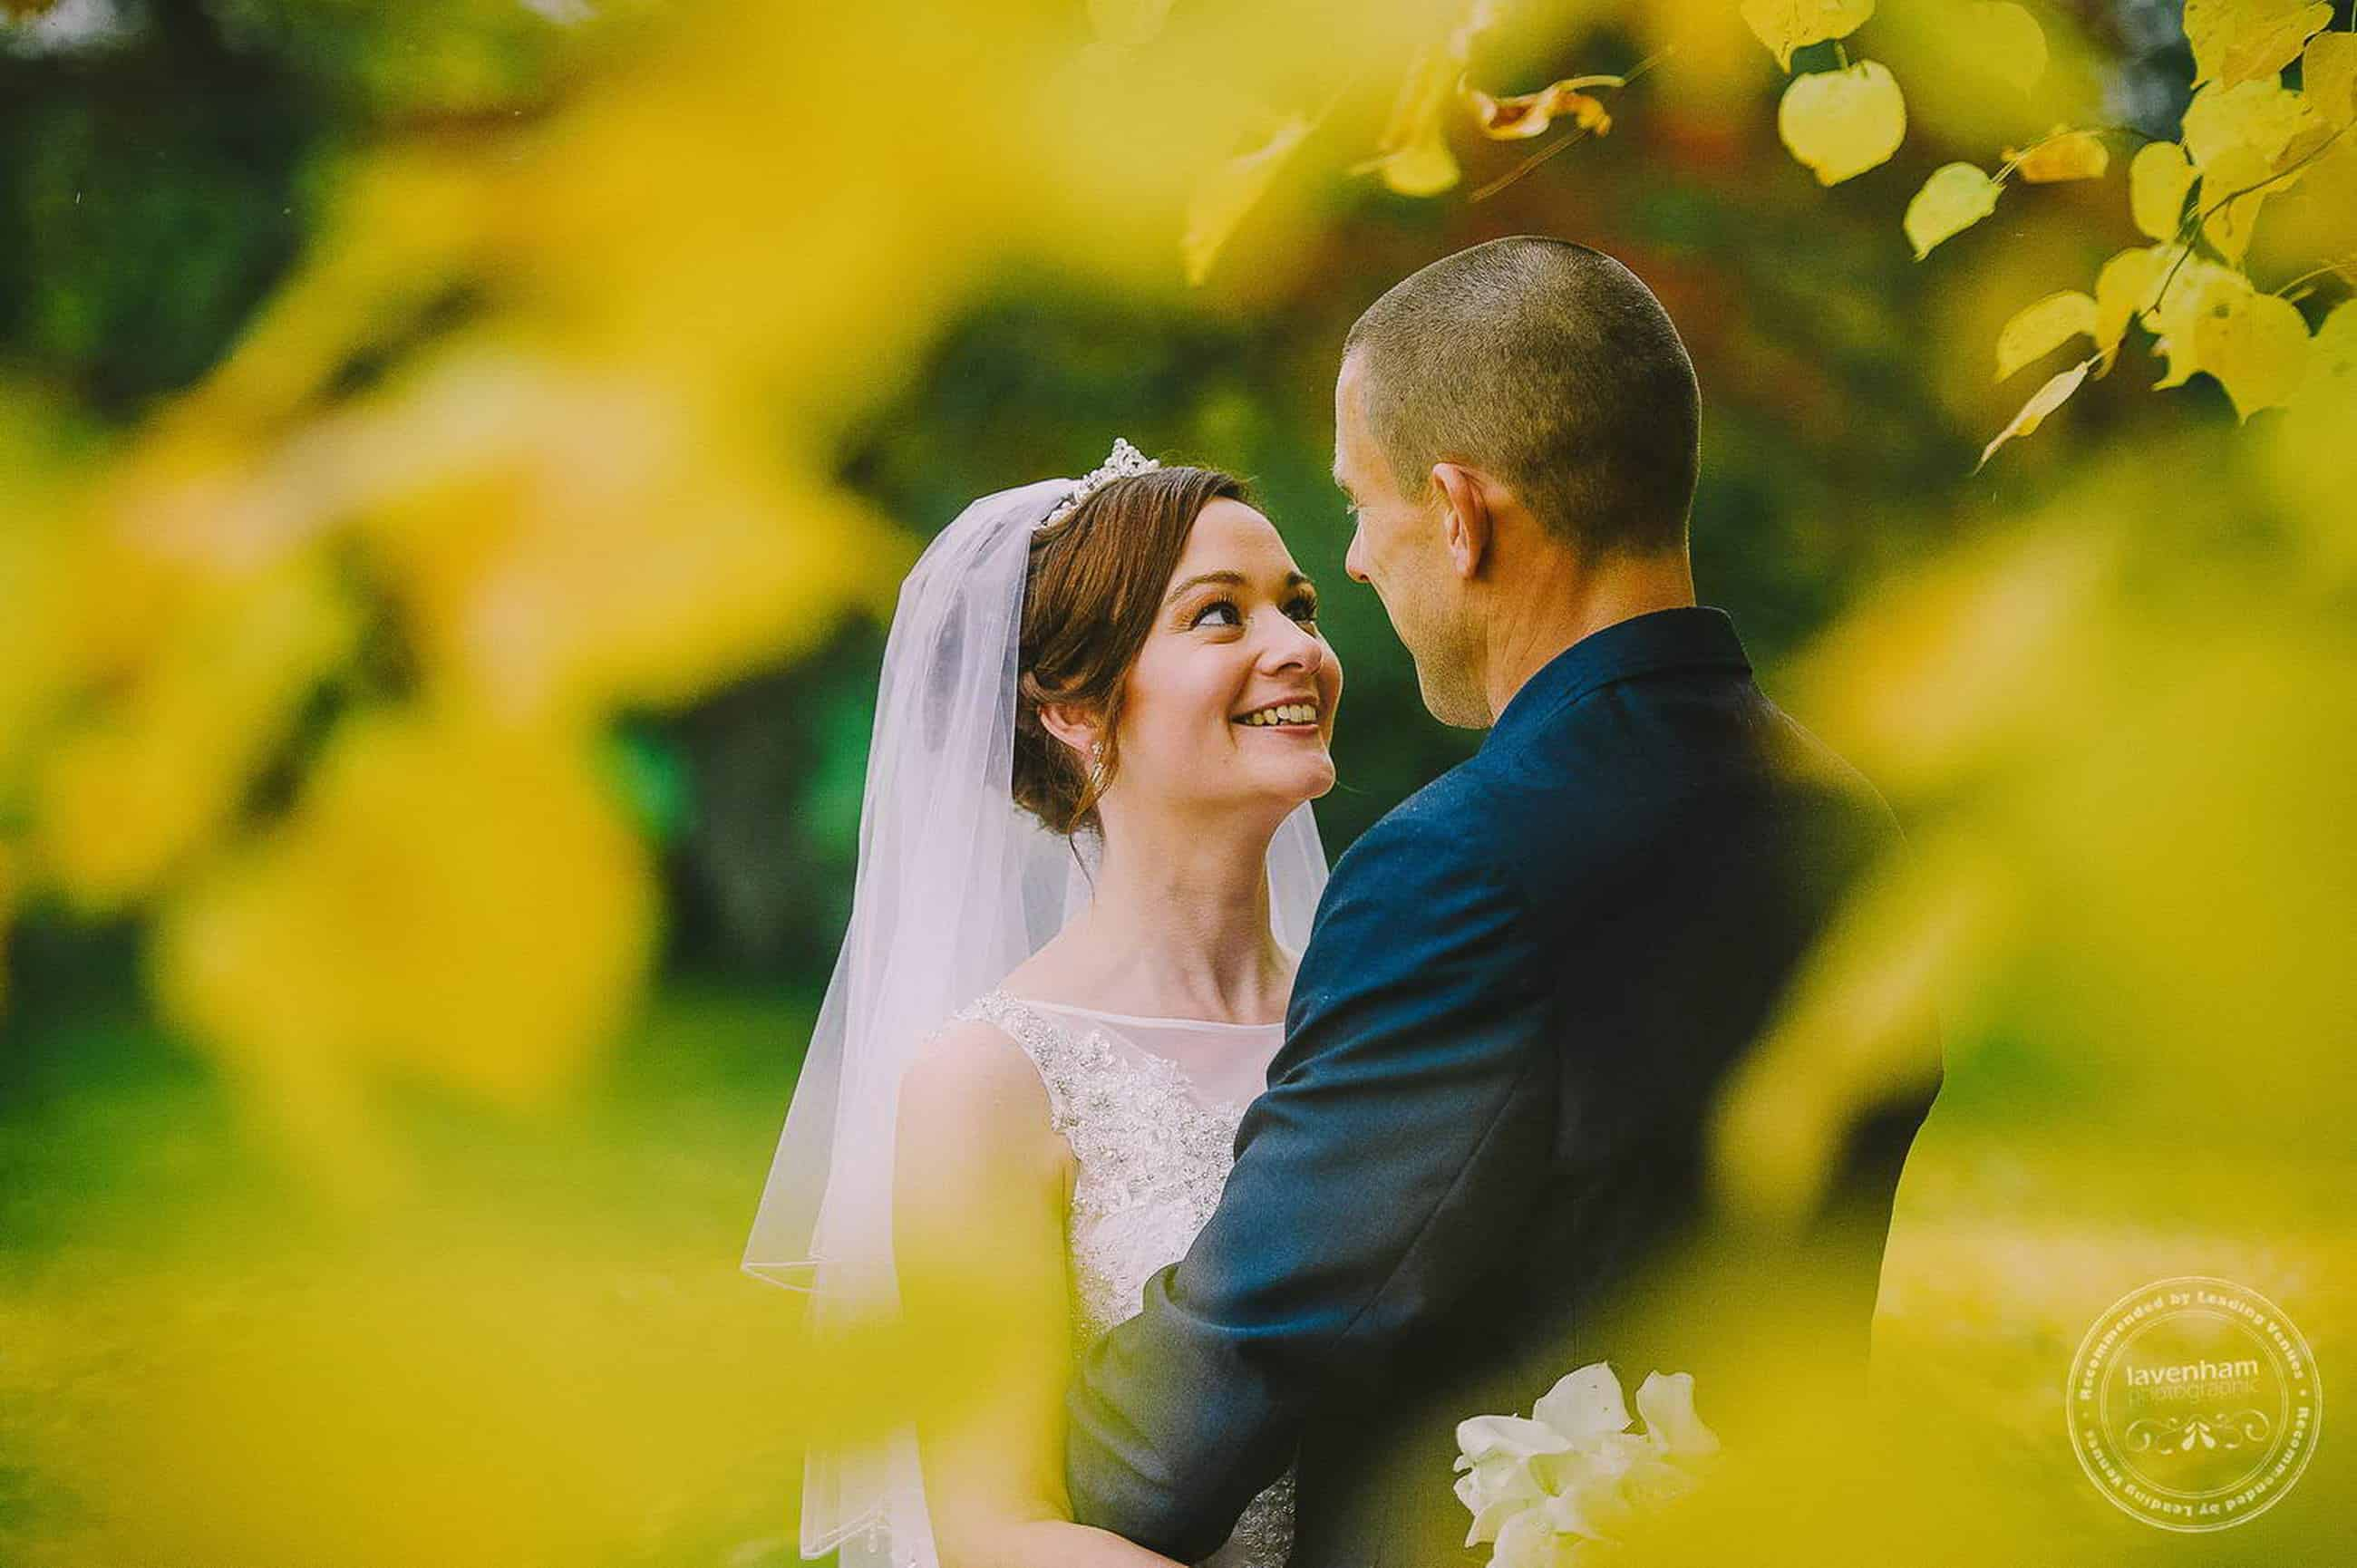 Autumn Leaves, Leez Priory. These yellow leaves appeared just in time for this wedding, the following week was back at Leez Priory, and the colour had already gone, which makes these wedding photos quite unique!